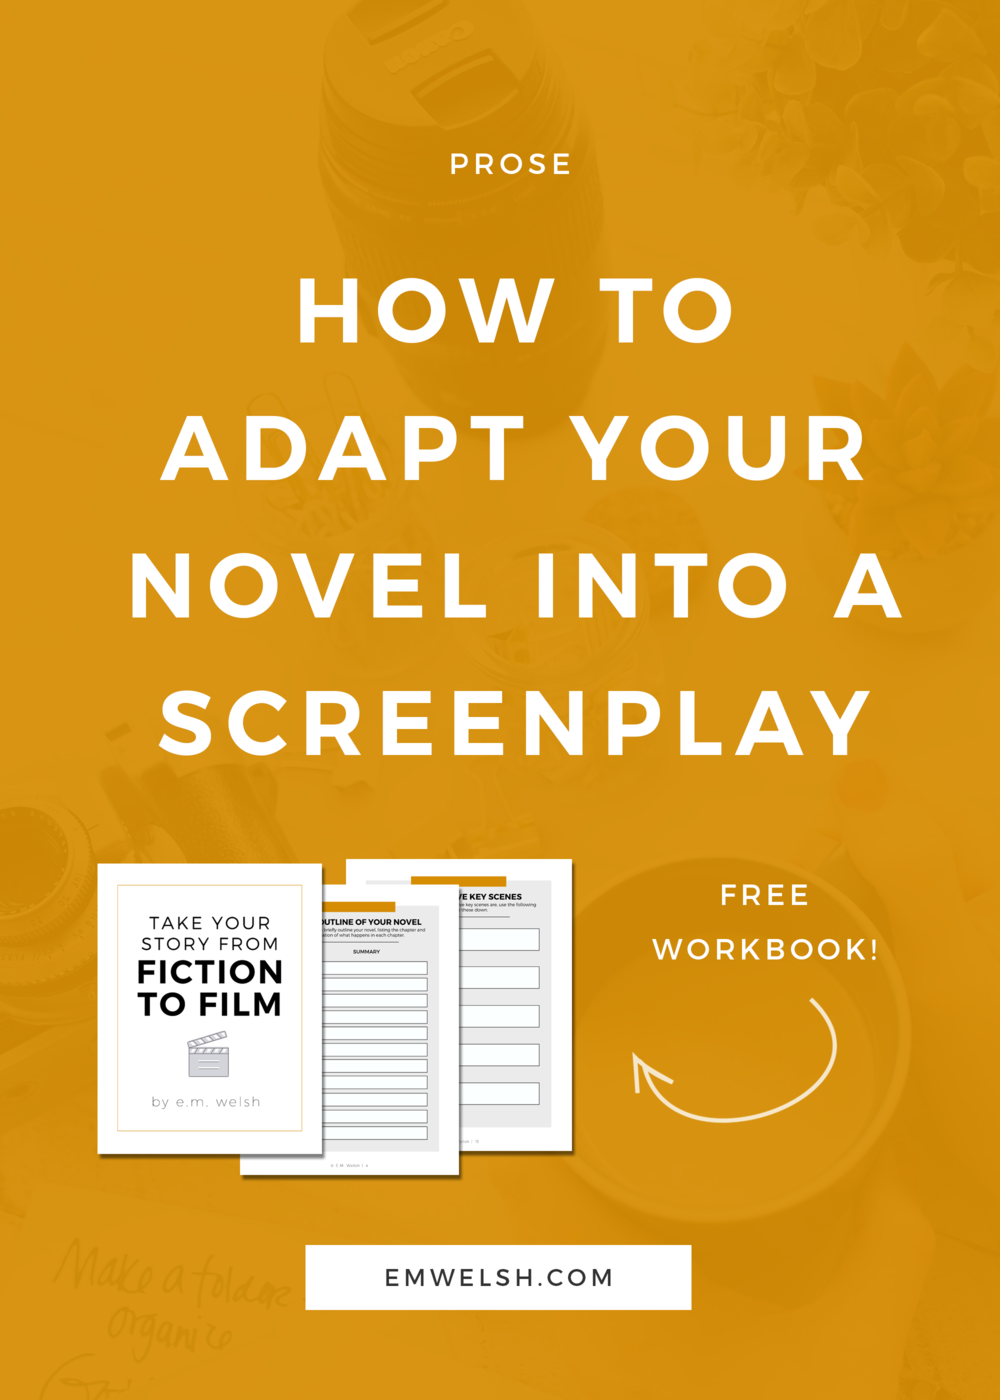 How to Adapt a Novel to a Movie